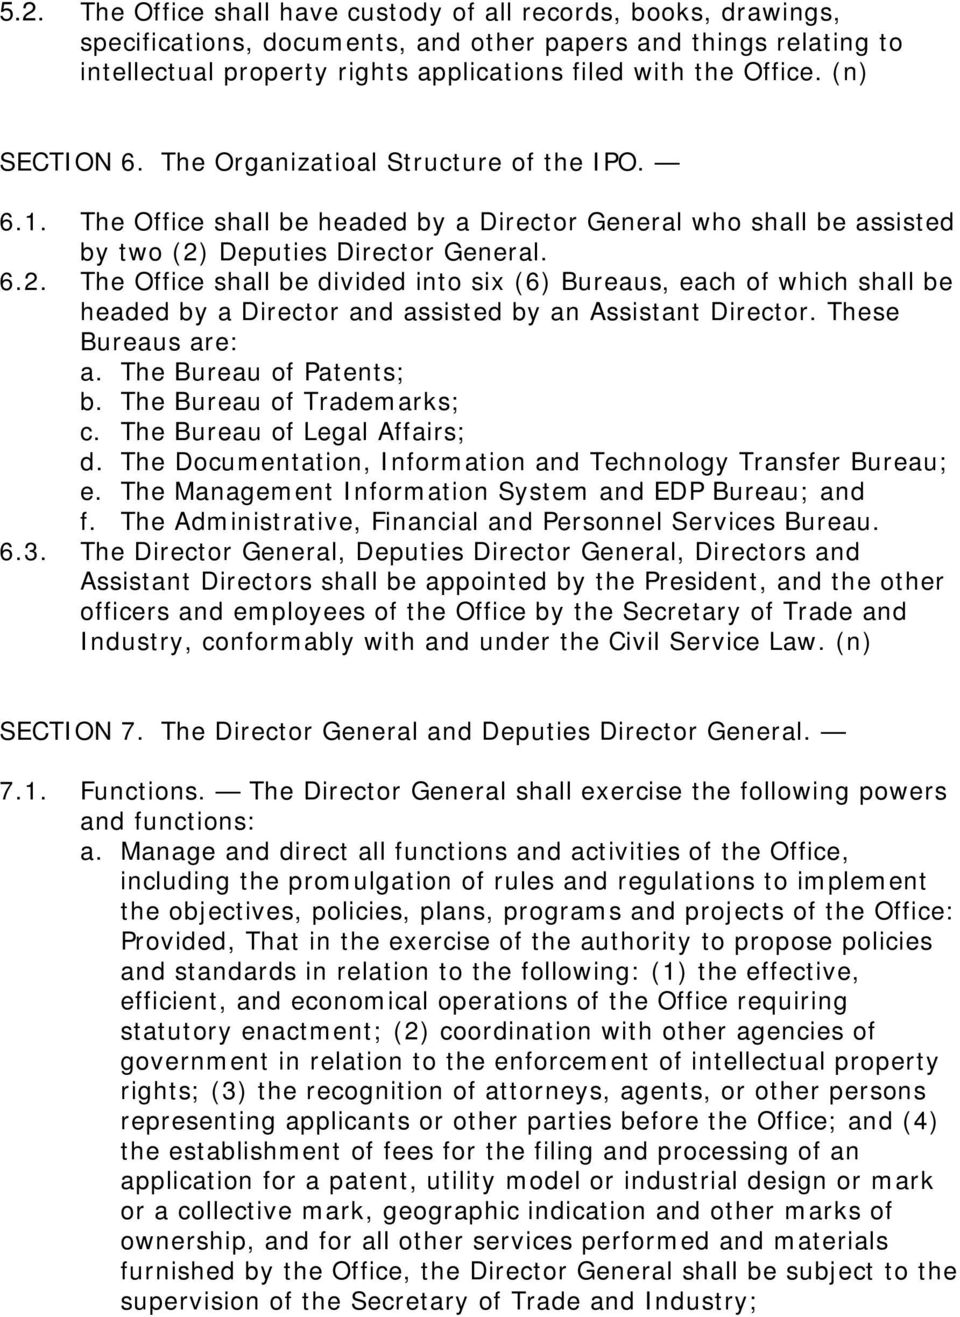 Deputies Director General. 6.2. The Office shall be divided into six (6) Bureaus, each of which shall be headed by a Director and assisted by an Assistant Director. These Bureaus are: a.